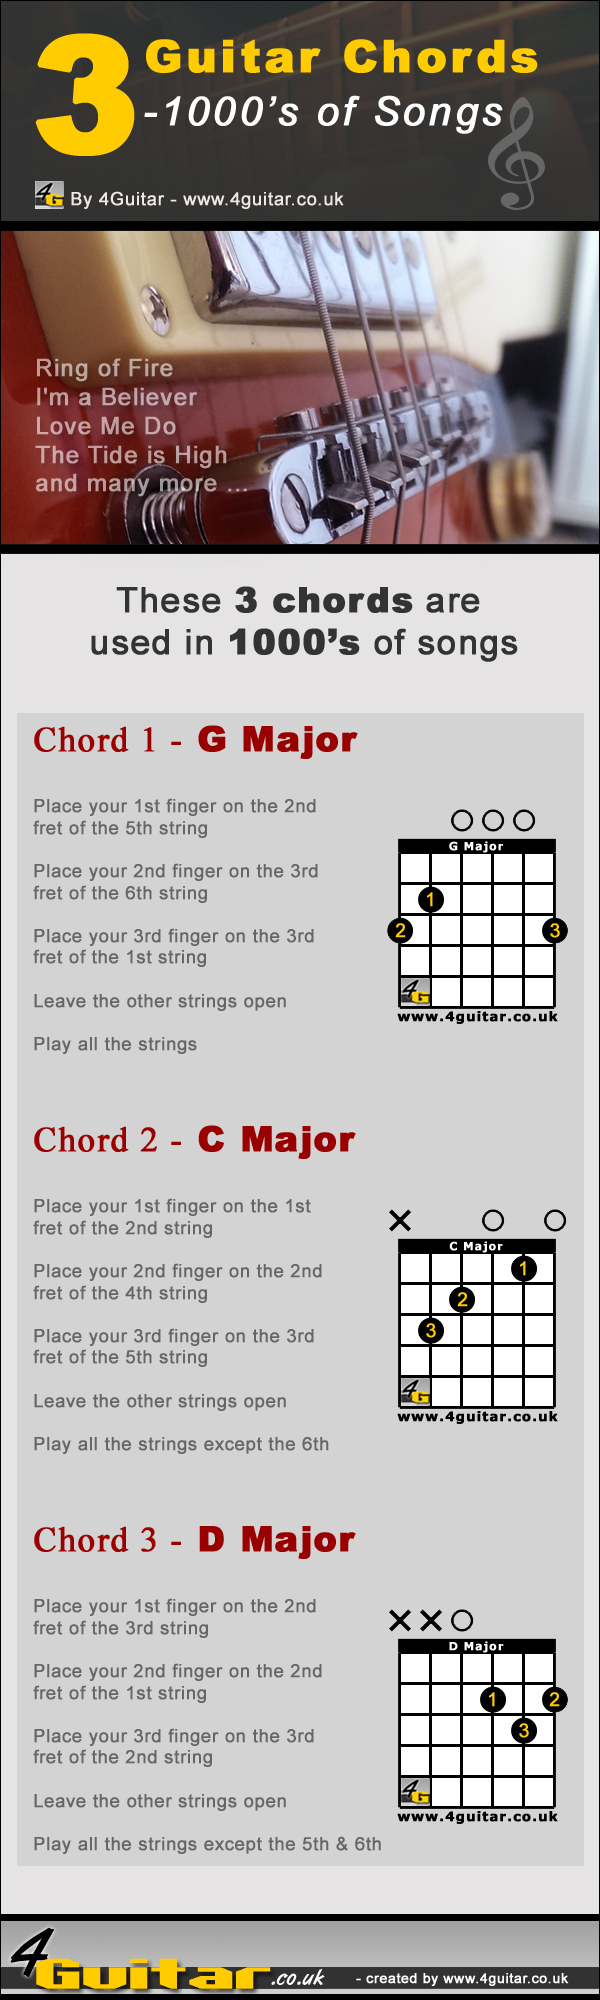 3 Chords - 1000's Of Songs Infographic - Click For Full Size